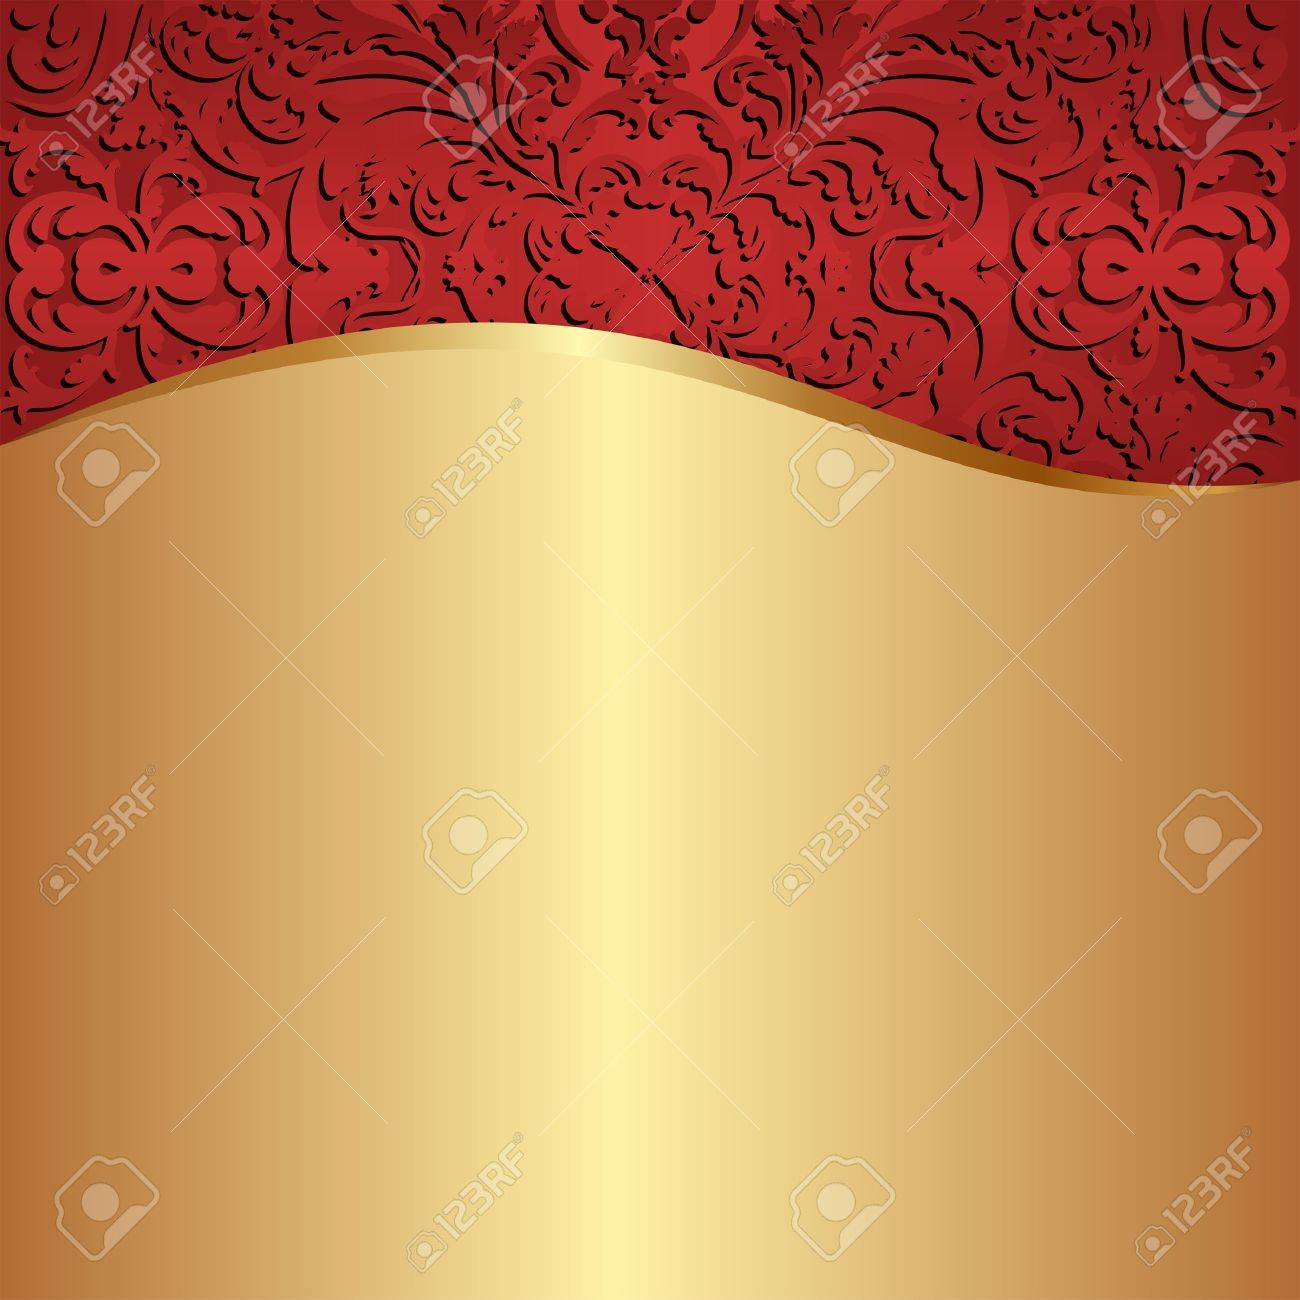 gold background with red ornaments Stock Vector - 17636437